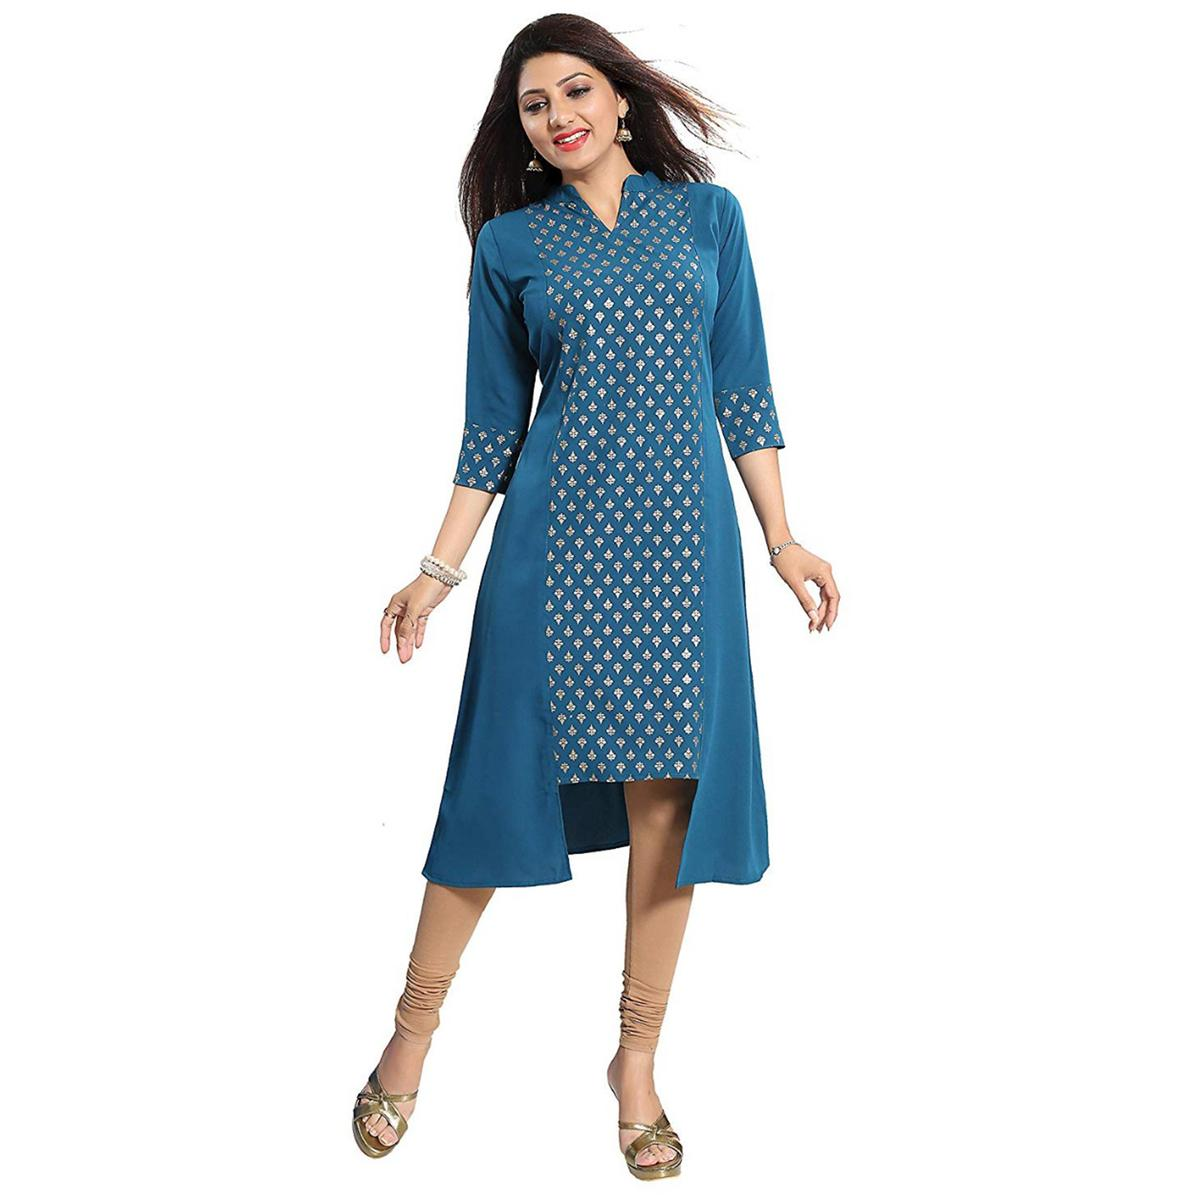 Magnetic Teal Blue Colored Party Wear Printed Crepe Kurti